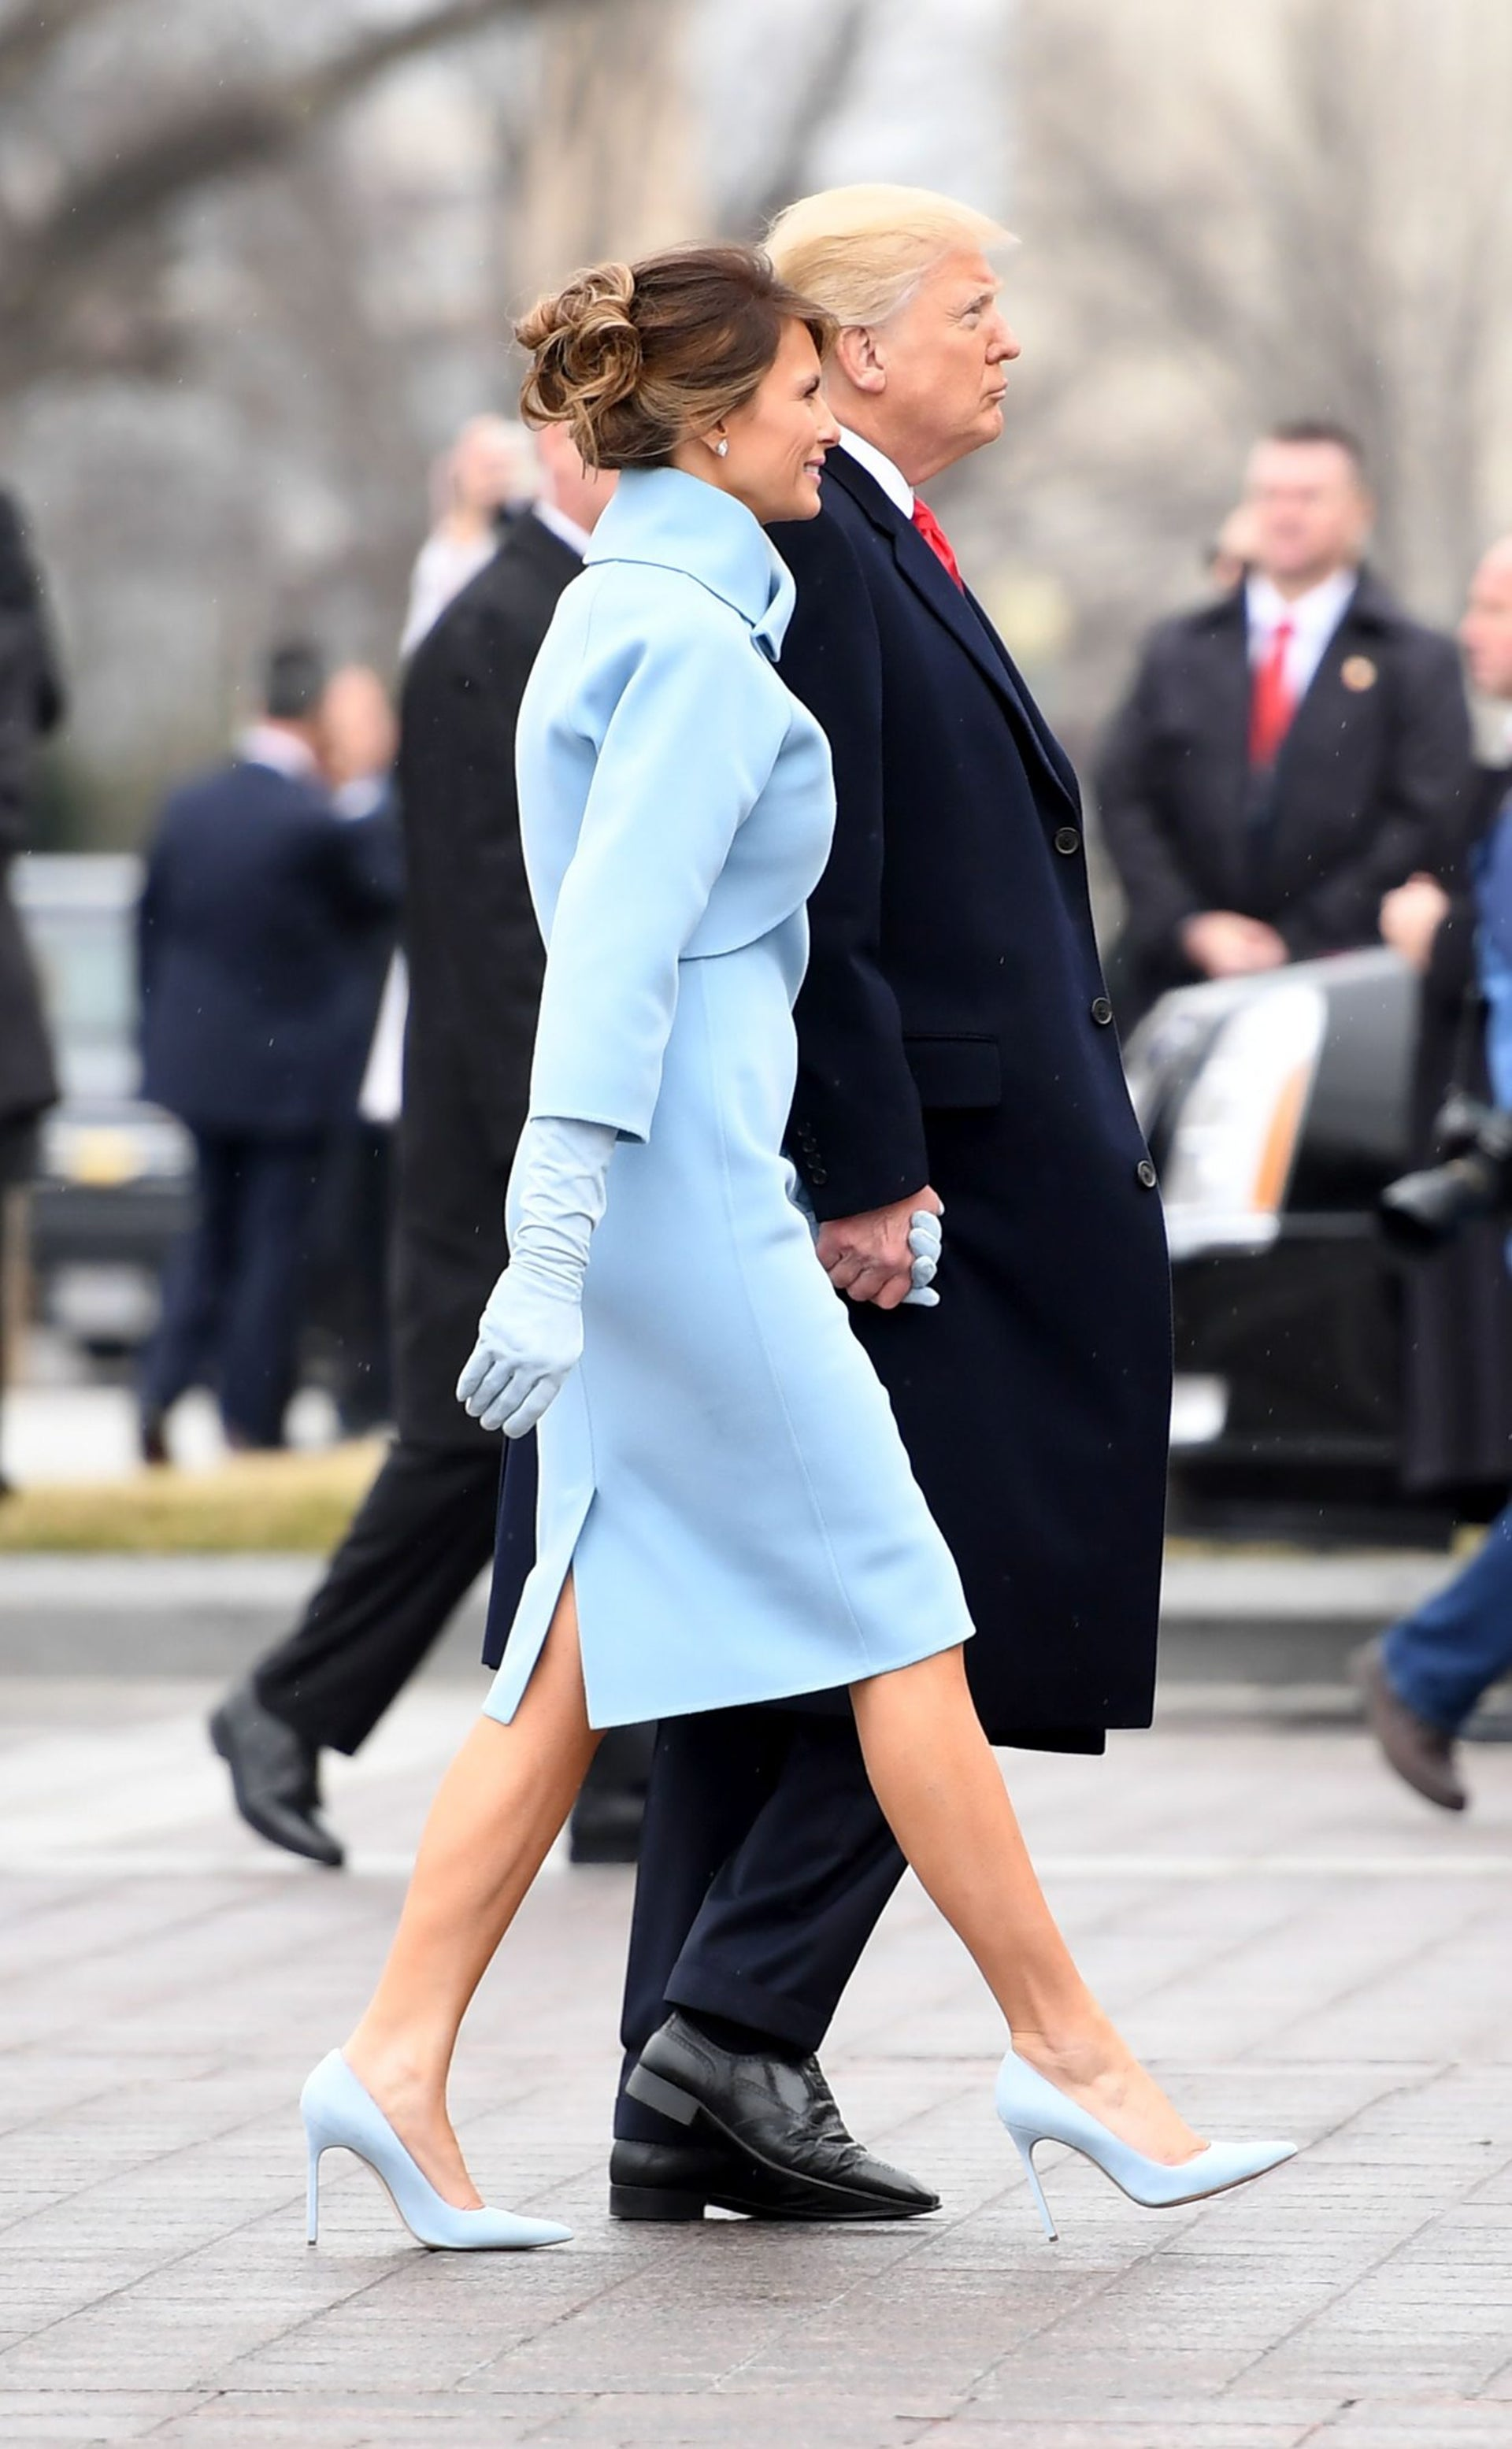 President Doanld Trump and First Lady Melania Trump walk back into the US Capitol after inauguration ceremonies at the US Capitol in Washington, DC.